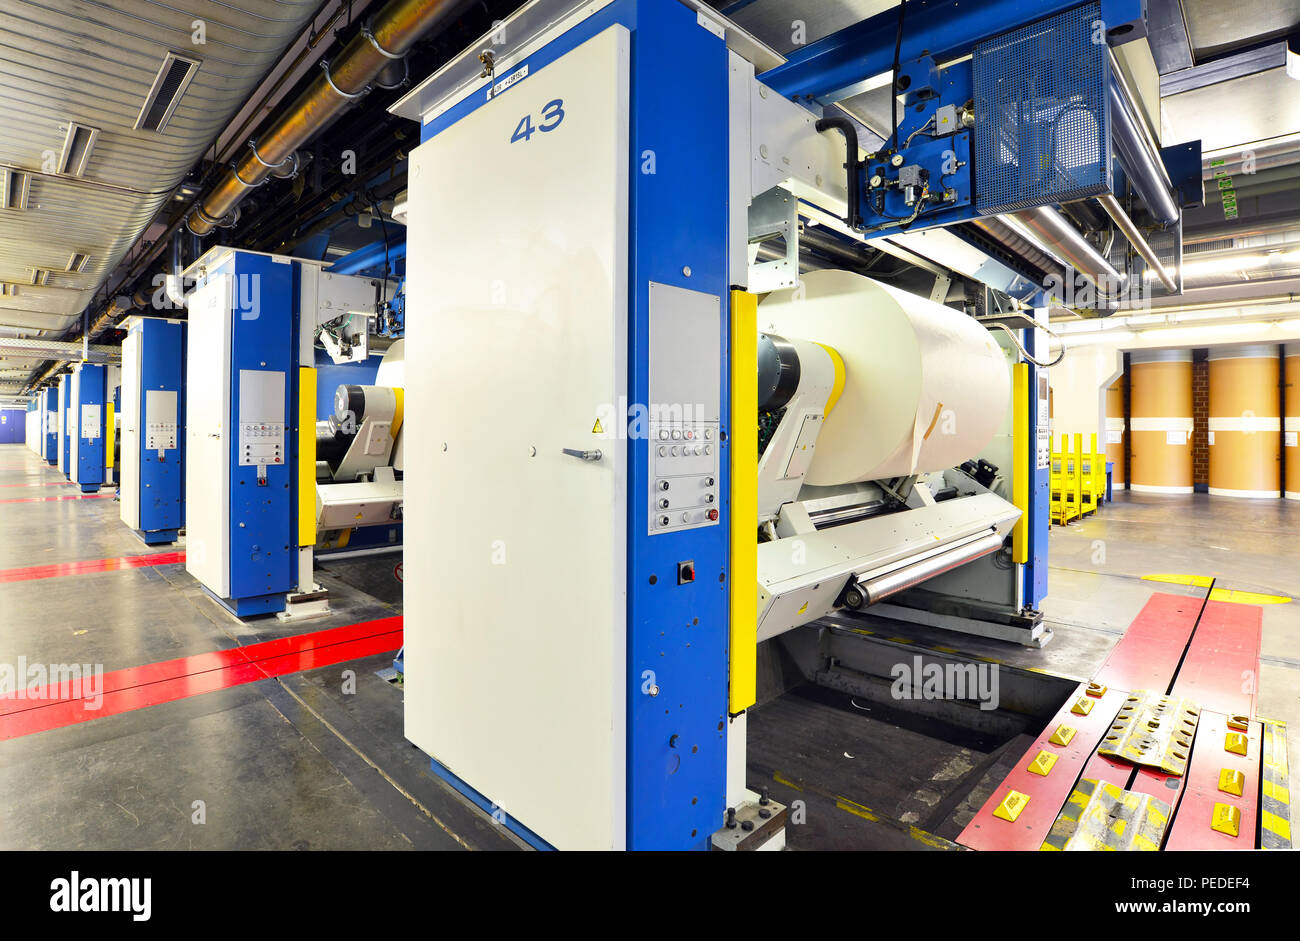 modern offset printing machines in a large print shop for production of newspapers & magazines - Stock Image